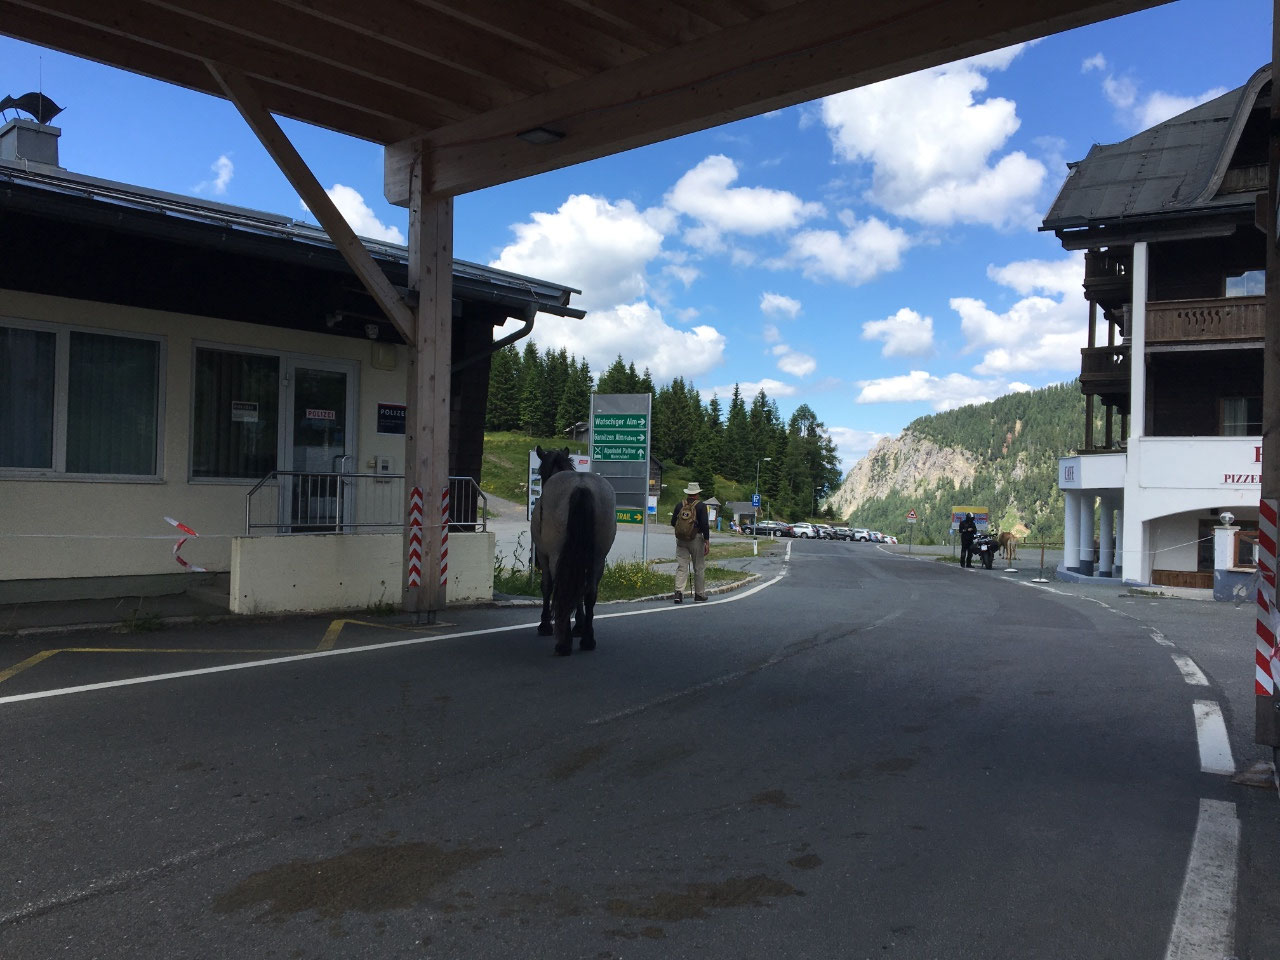 A horse checking in at the border crossing